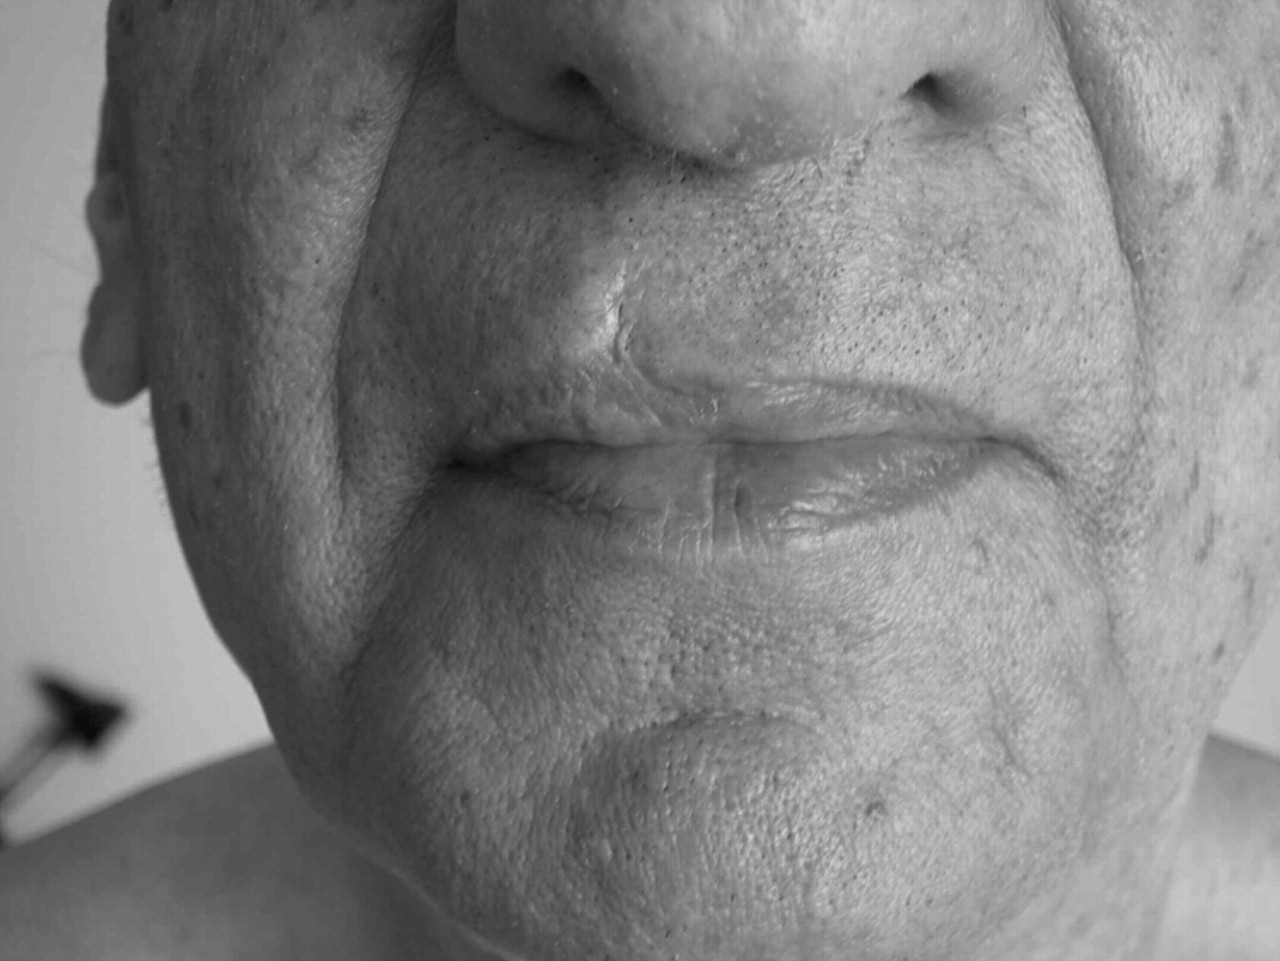 Reactivation of old scars: inevitably sarcoid | Postgraduate Medical